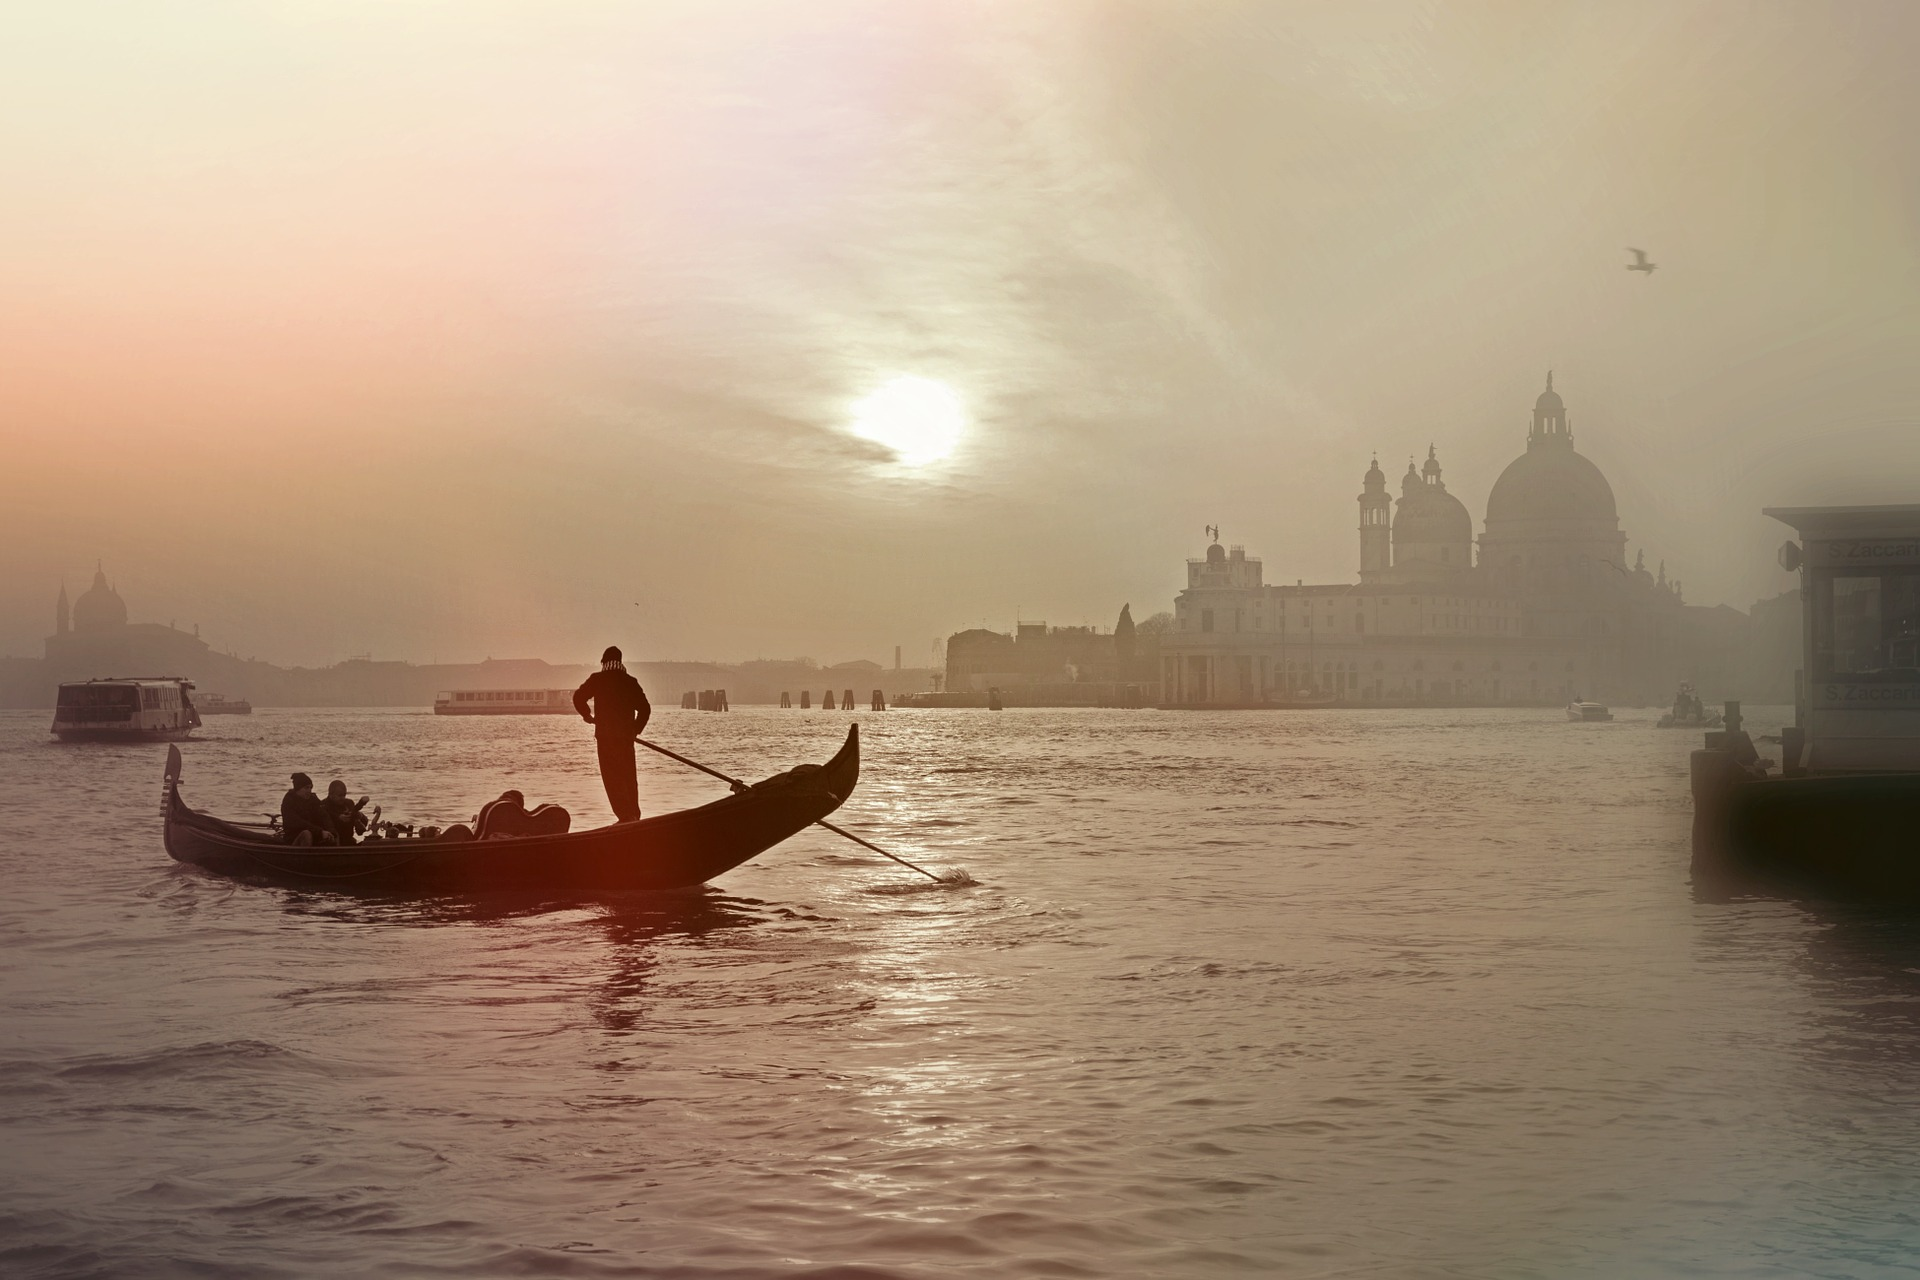 Venice's gondoliers have been stand up paddling for centuries.